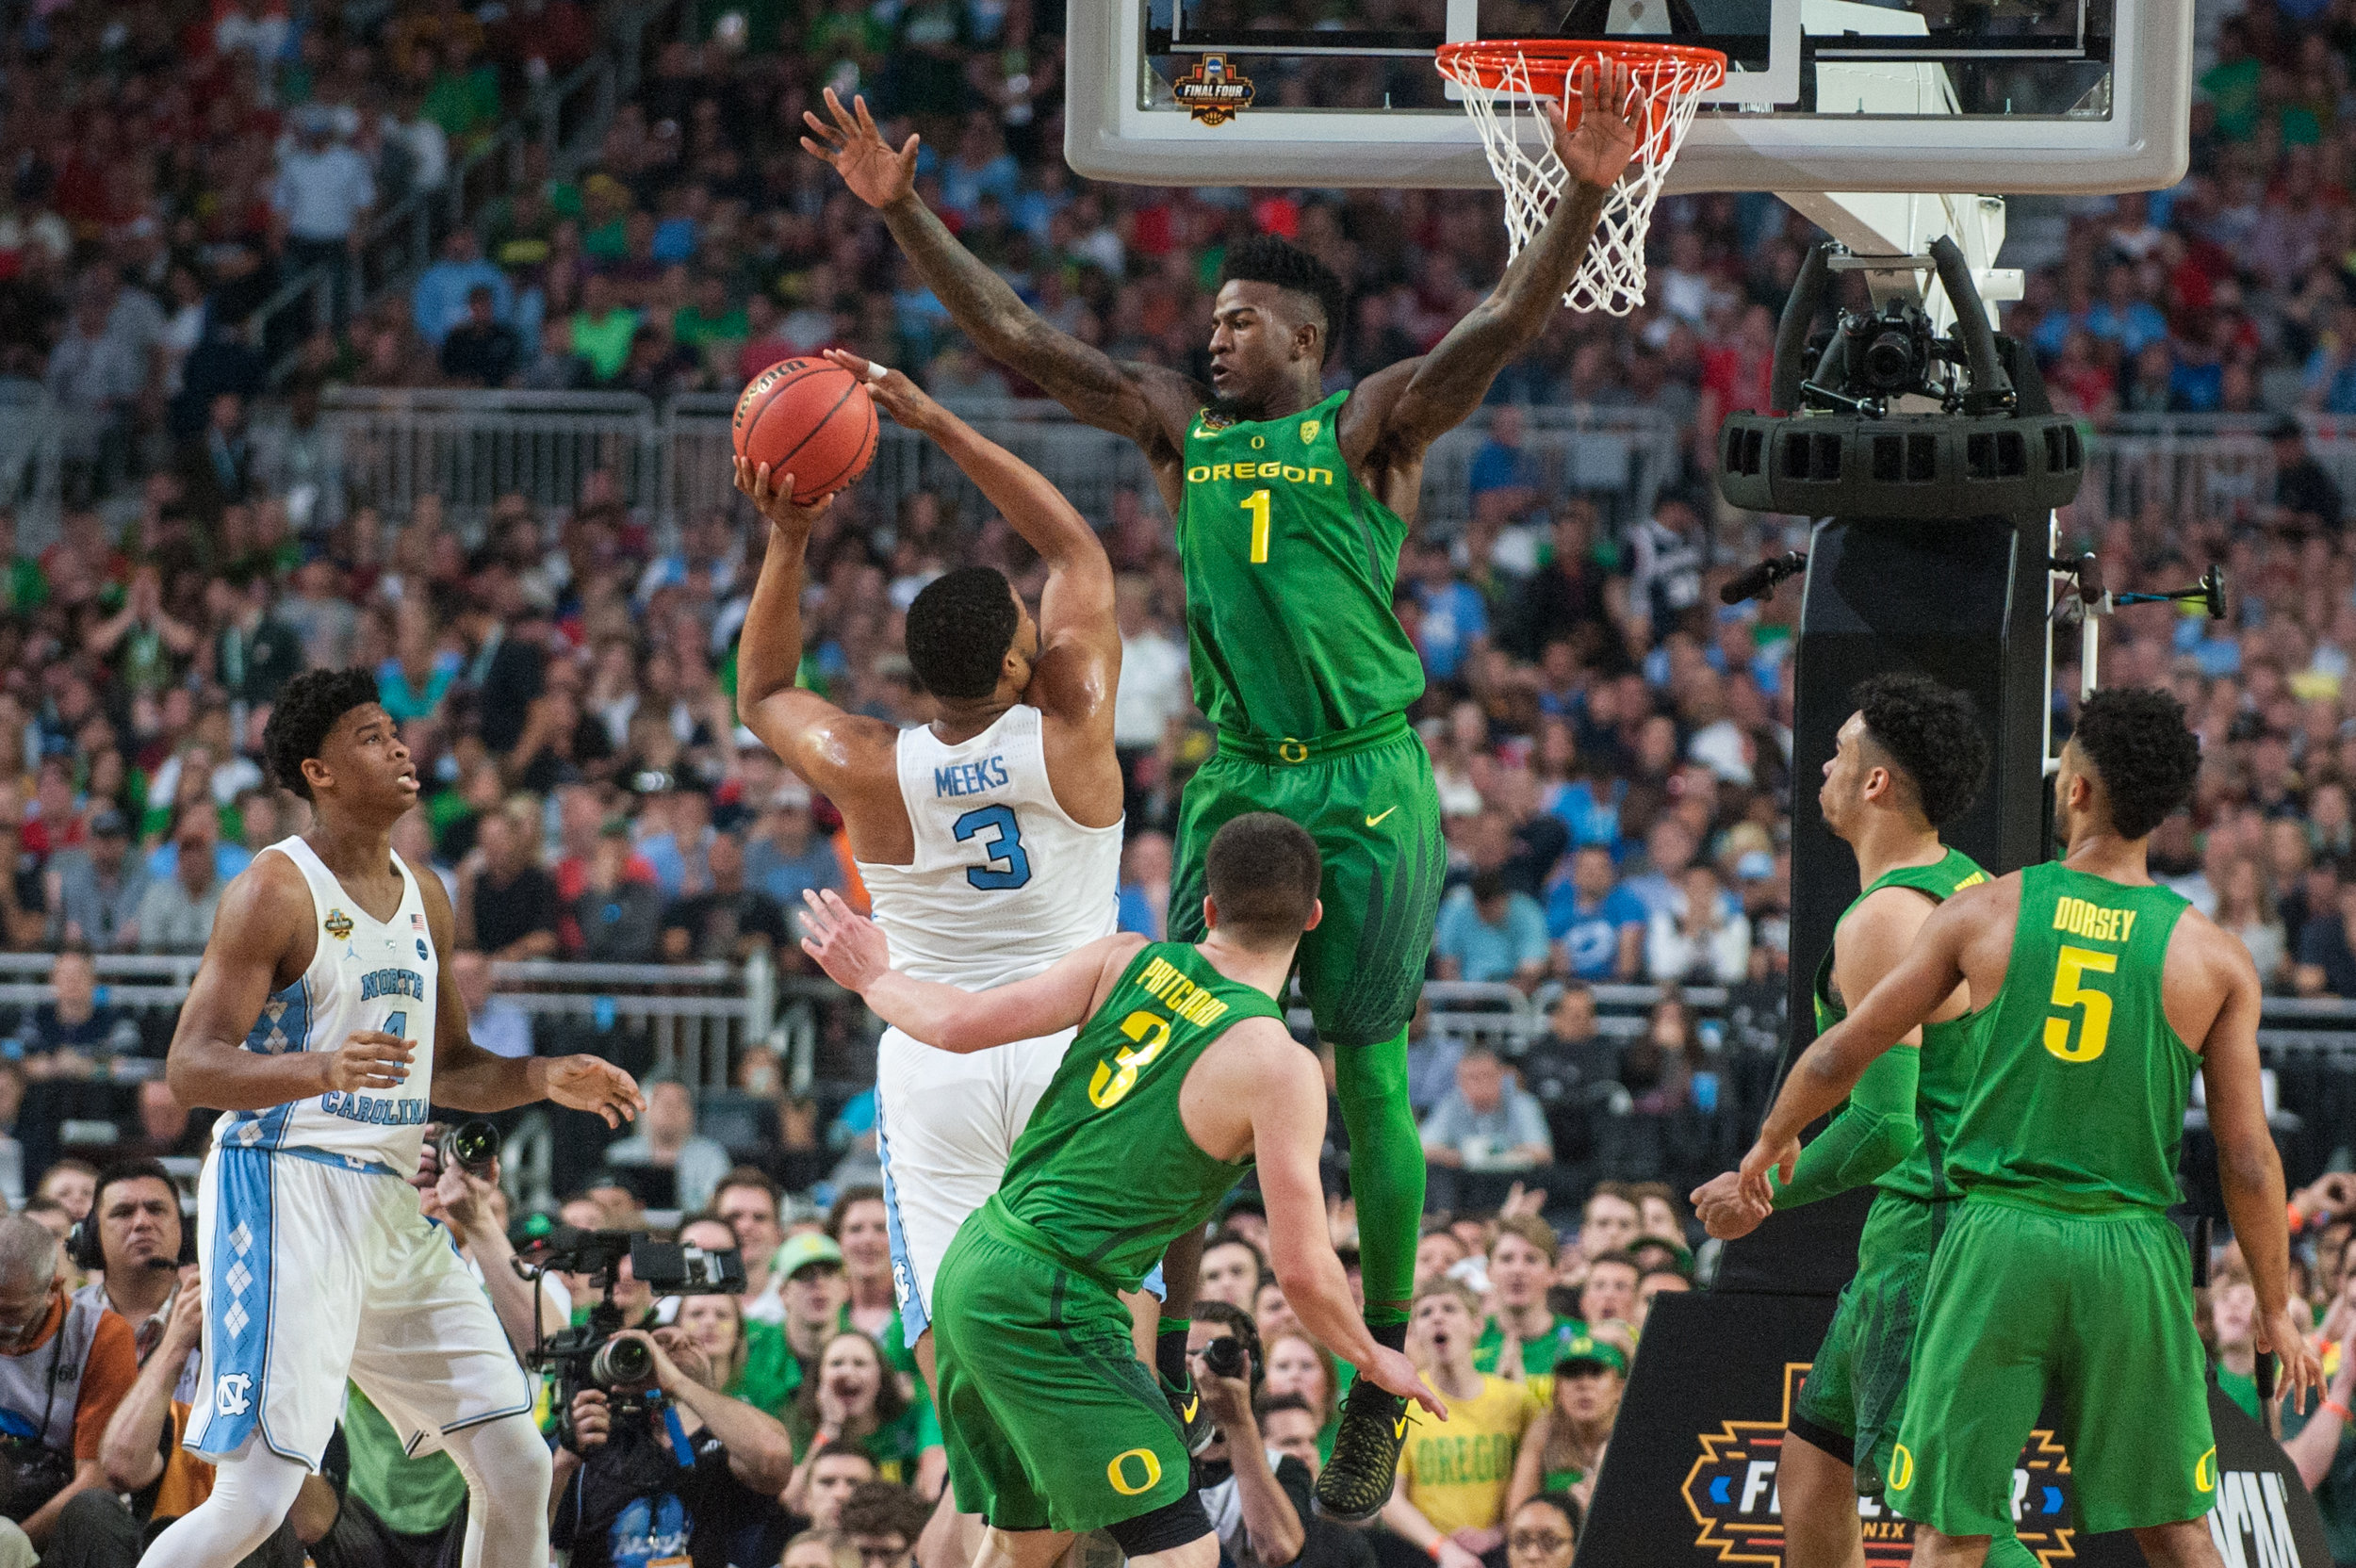 17.03.31.emg.an.final.four.oregon.vs.north.carolina-9.jpg